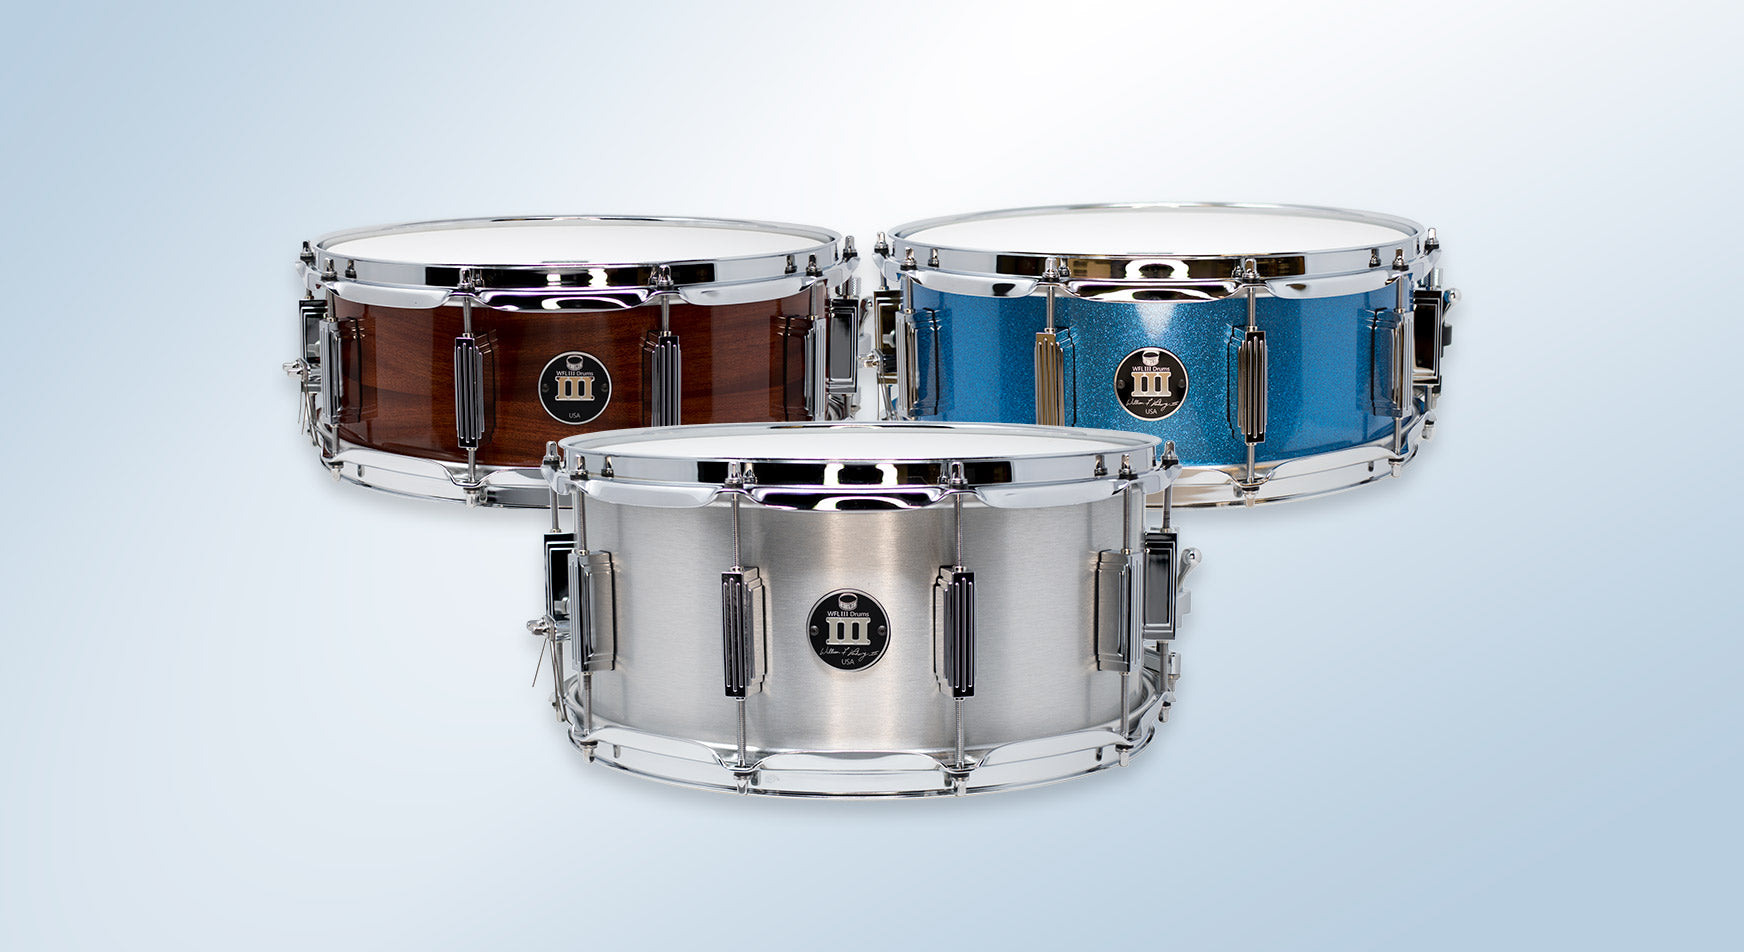 Getting The Most Out Of Your Snare Drum